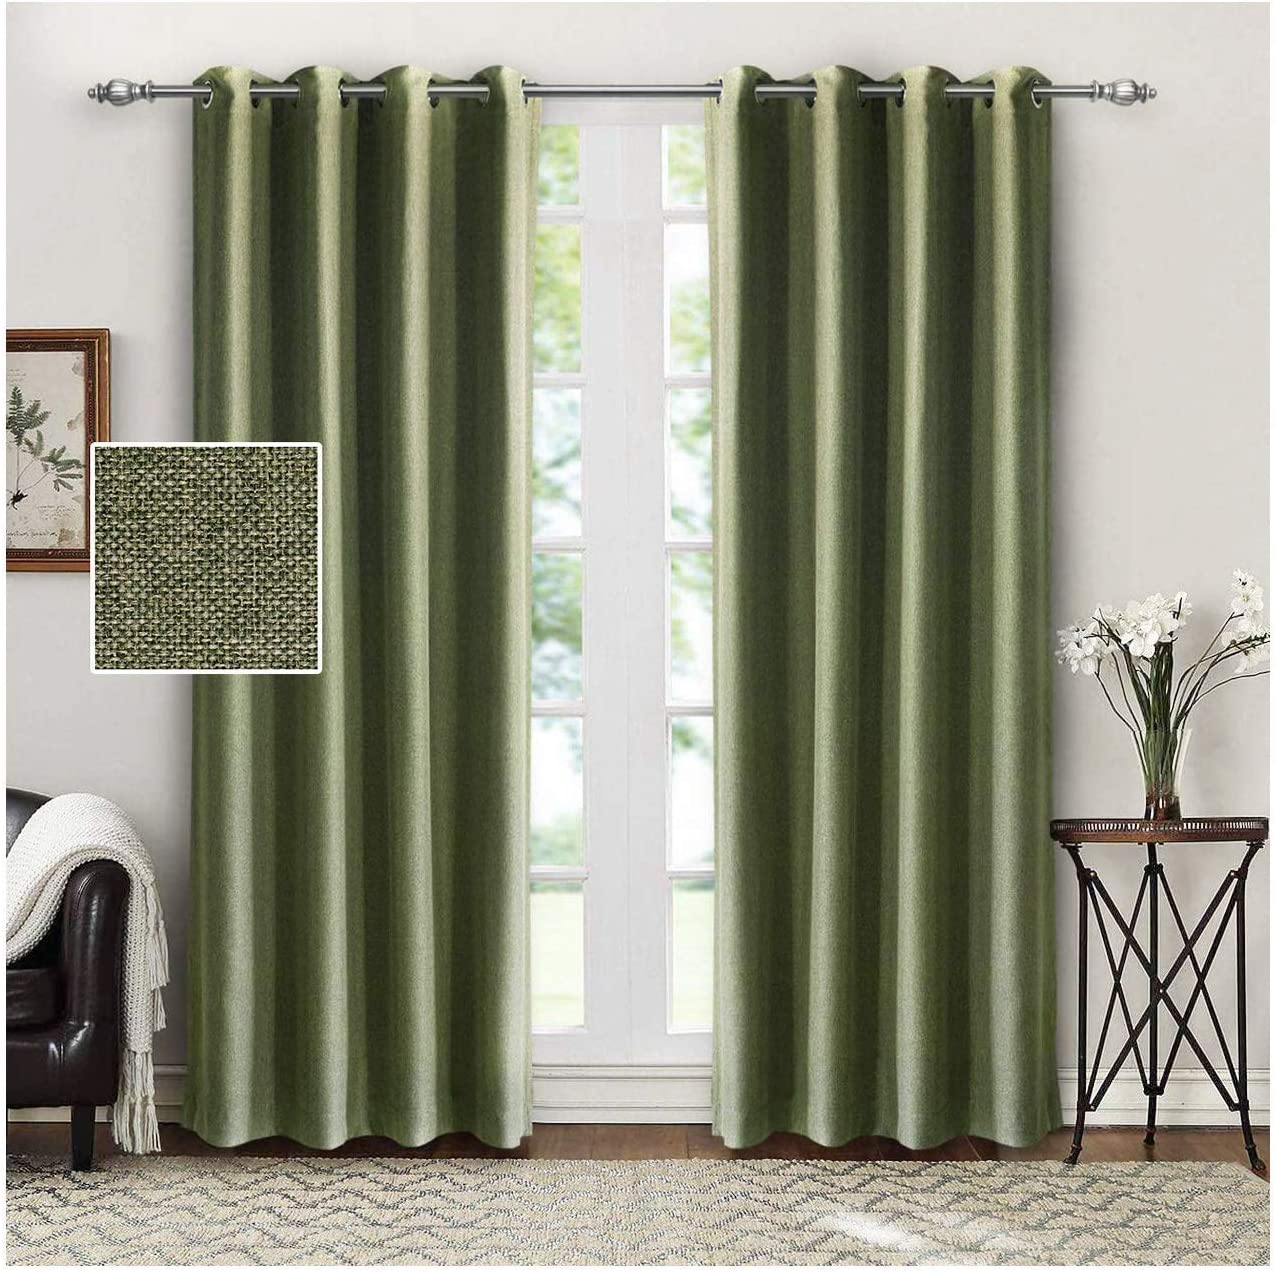 SINGINGLORY Green Room Darkening Curtain